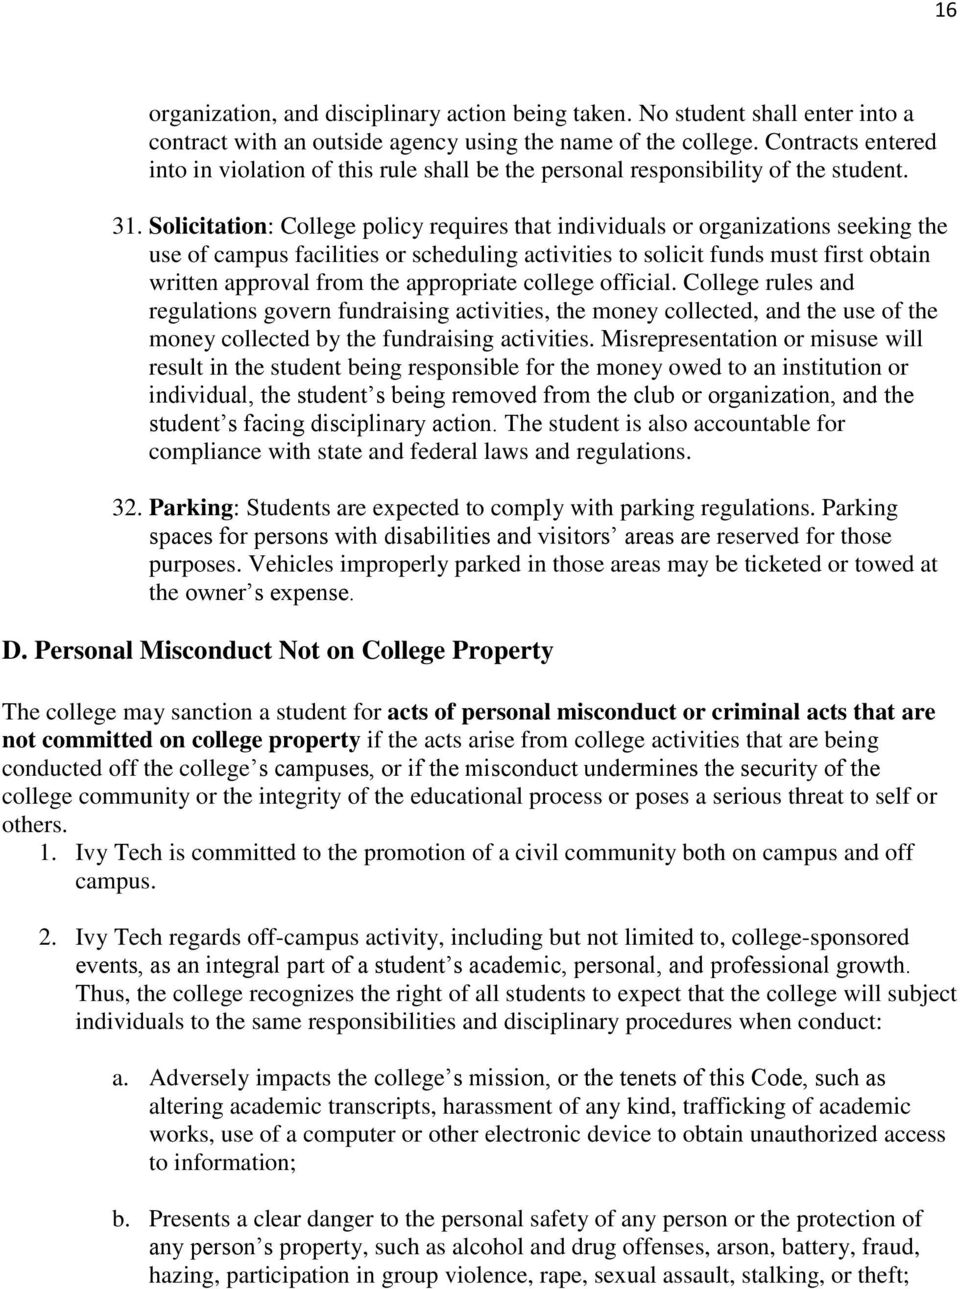 Solicitation: College policy requires that individuals or organizations seeking the use of campus facilities or scheduling activities to solicit funds must first obtain written approval from the